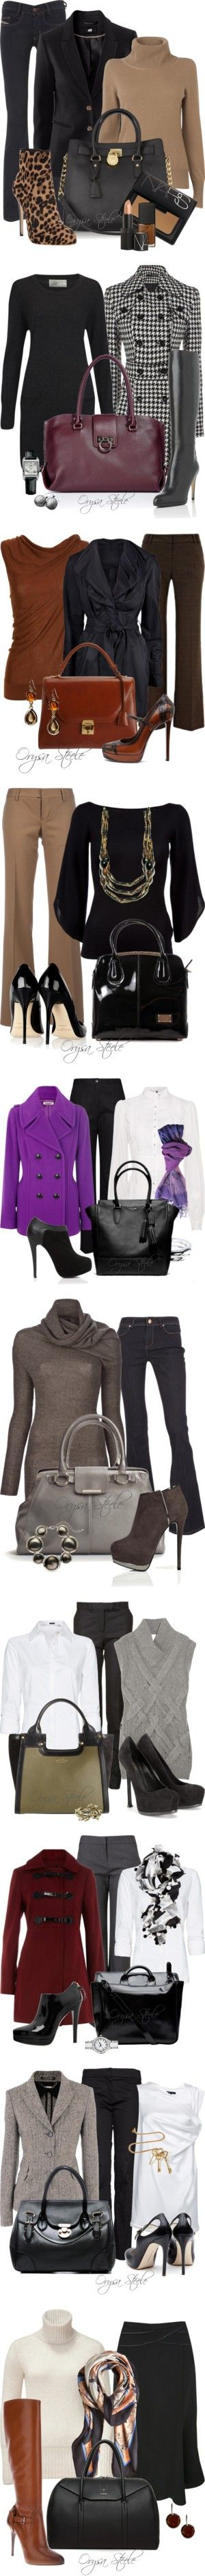 """""""Dressed Up for Fall"""" by orysa on Polyvore"""